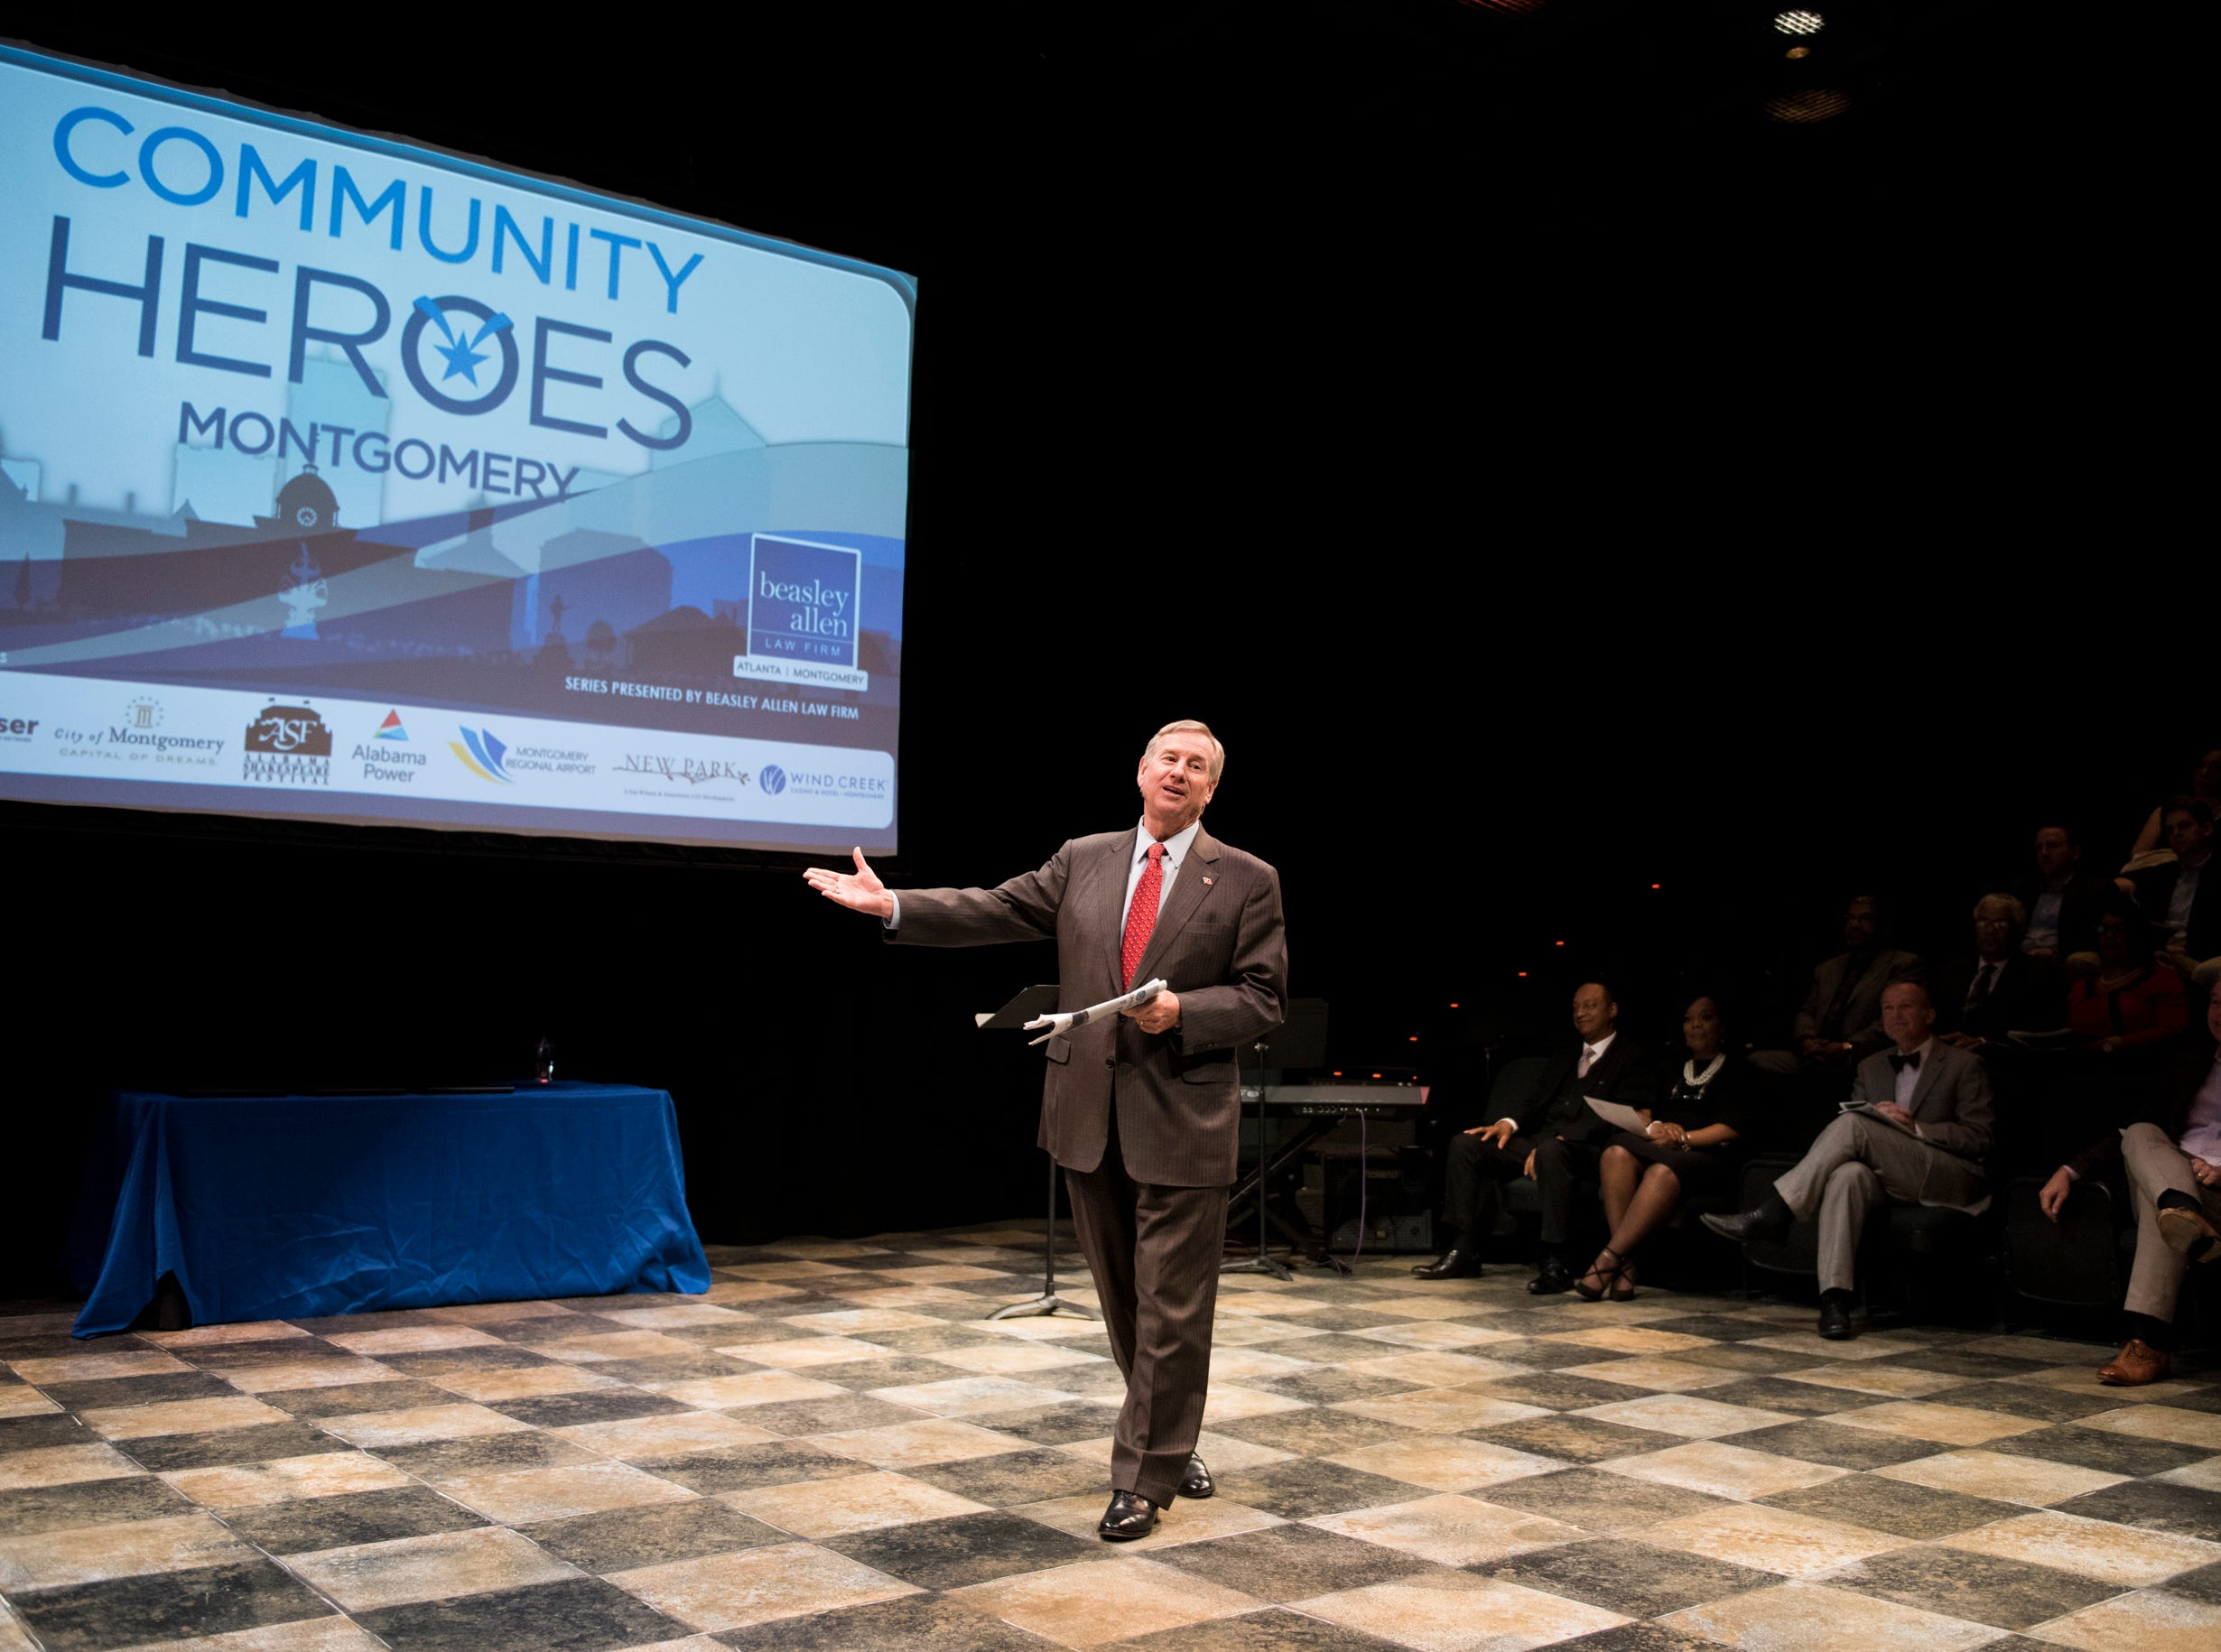 Mayor Todd Strange speaks during the Community Heroes awards ceremony at Alabama Shakespeare Festival in Montgomery, Ala., on Tuesday, Jan. 8, 2019.